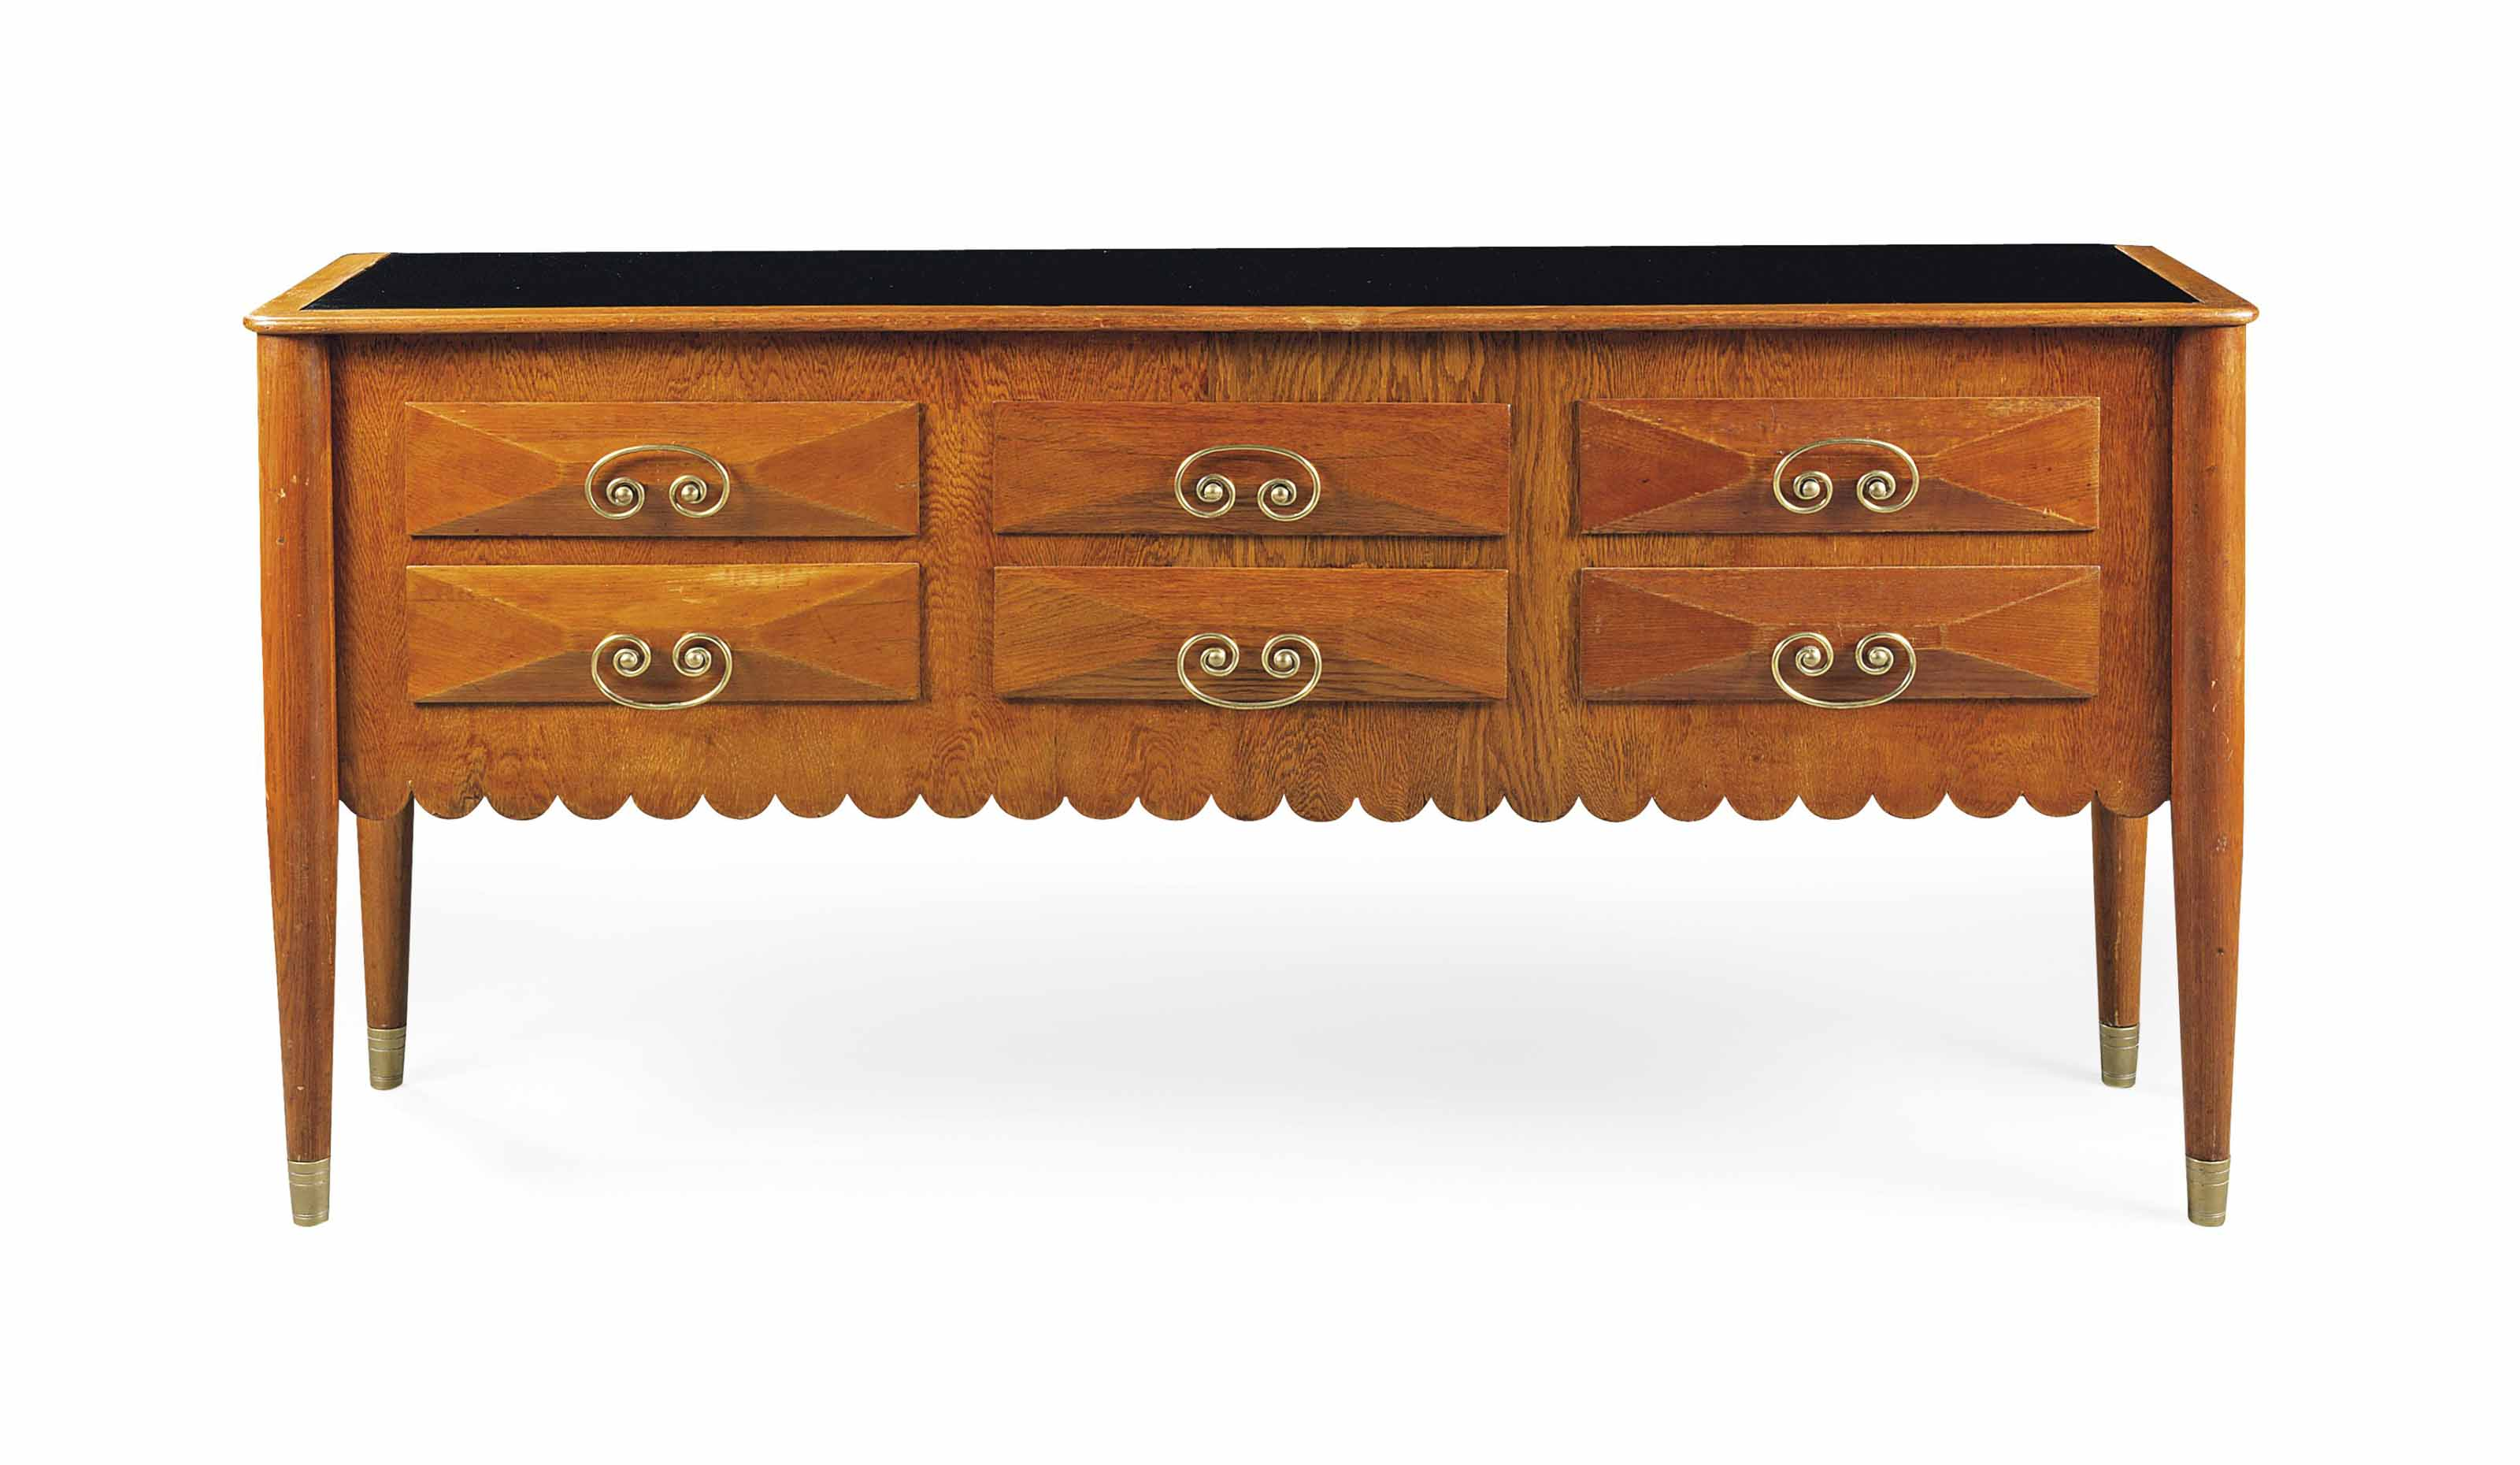 A PAOLO BUFFA (1903-1970) OAK SIDEBOARD